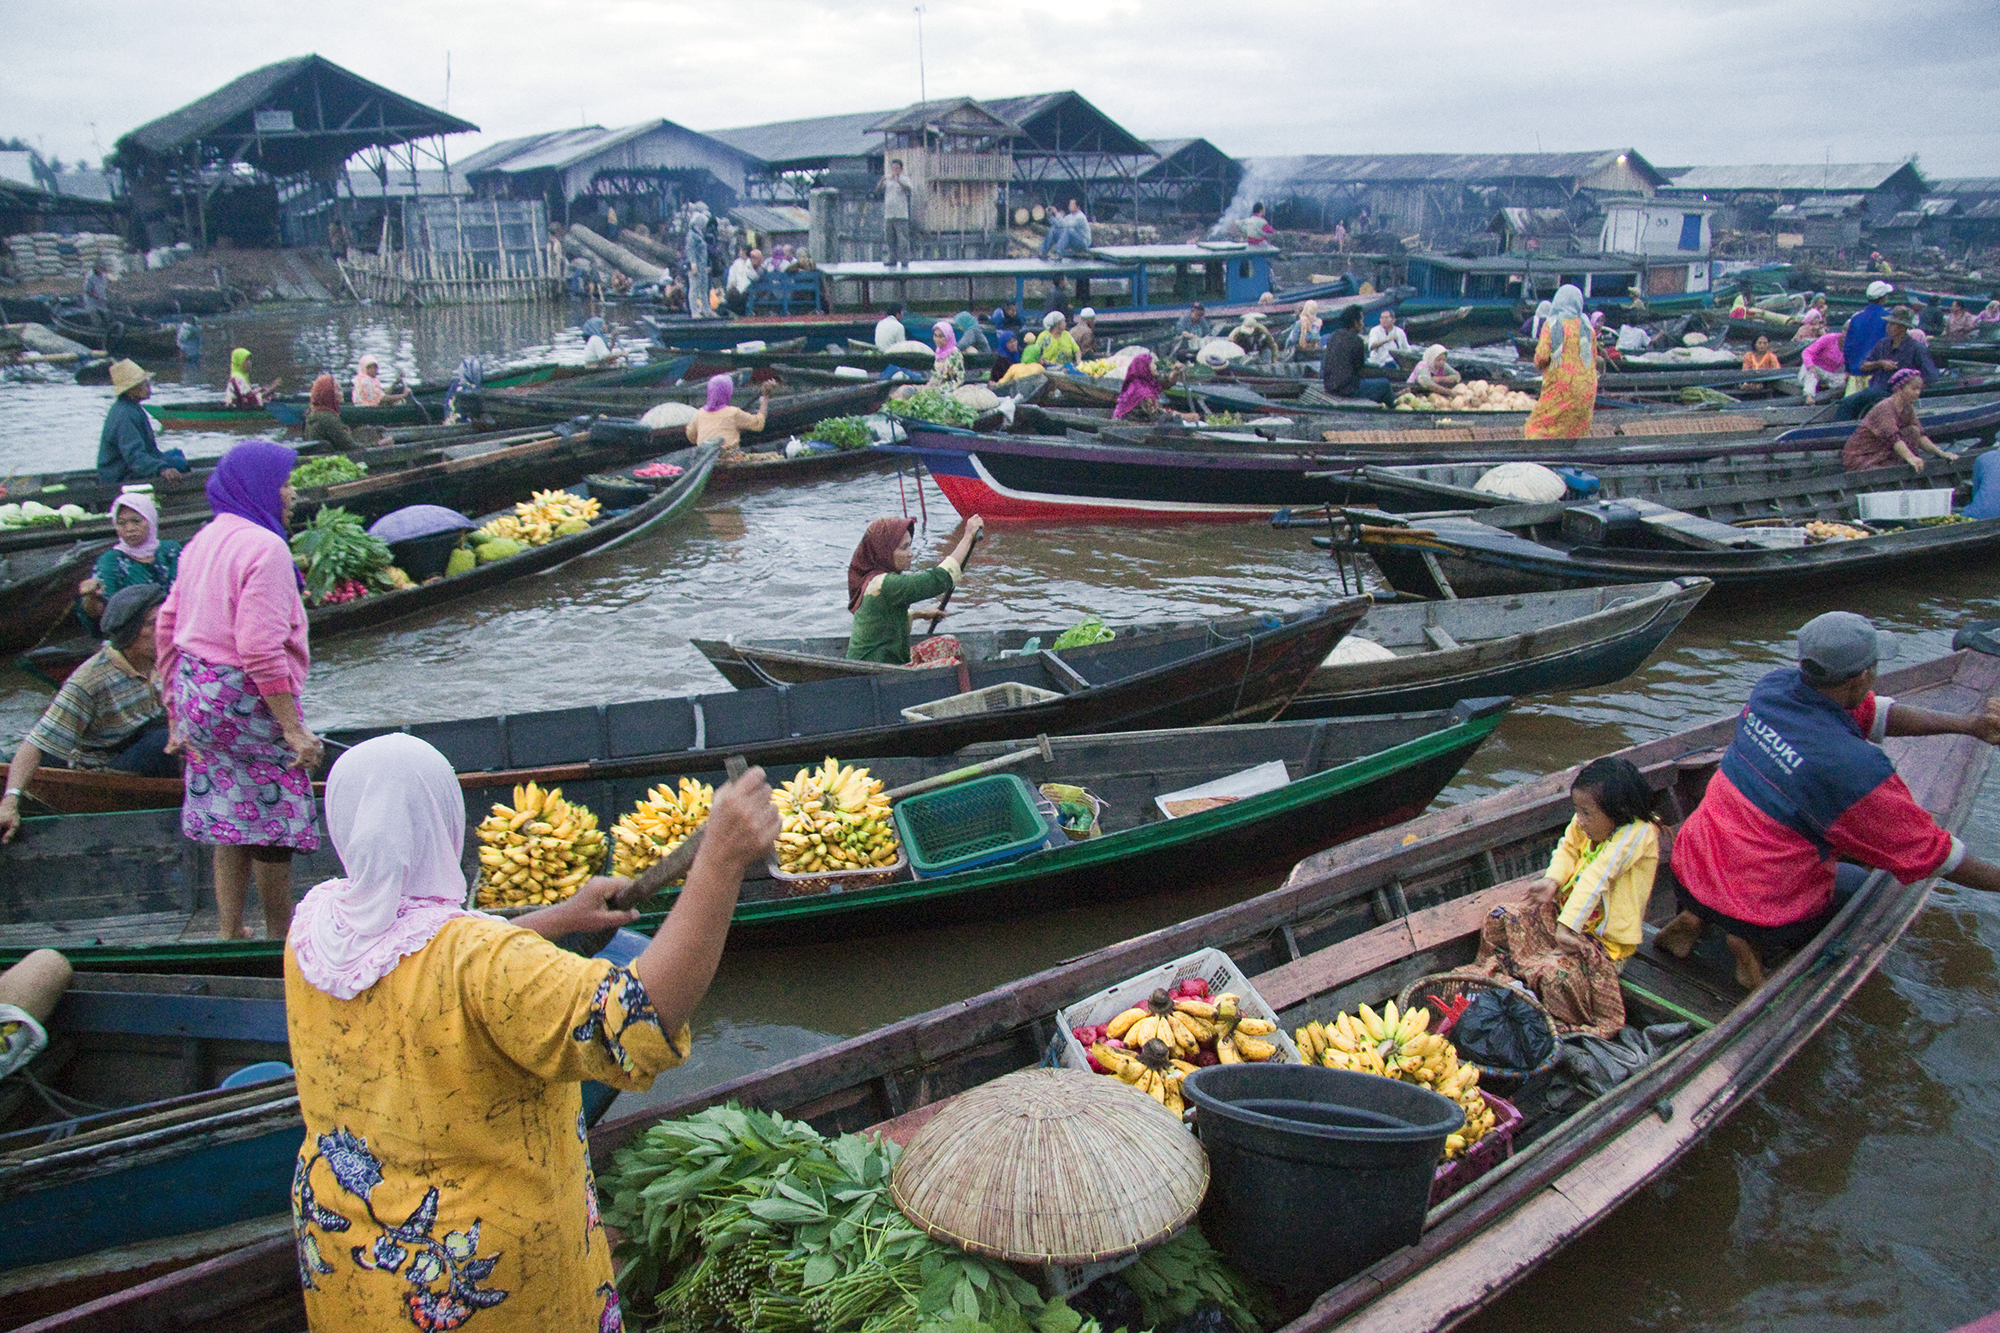 http://upload.wikimedia.org/wikipedia/commons/5/53/Traditional_Floating_Market_Kuin_River.jpg